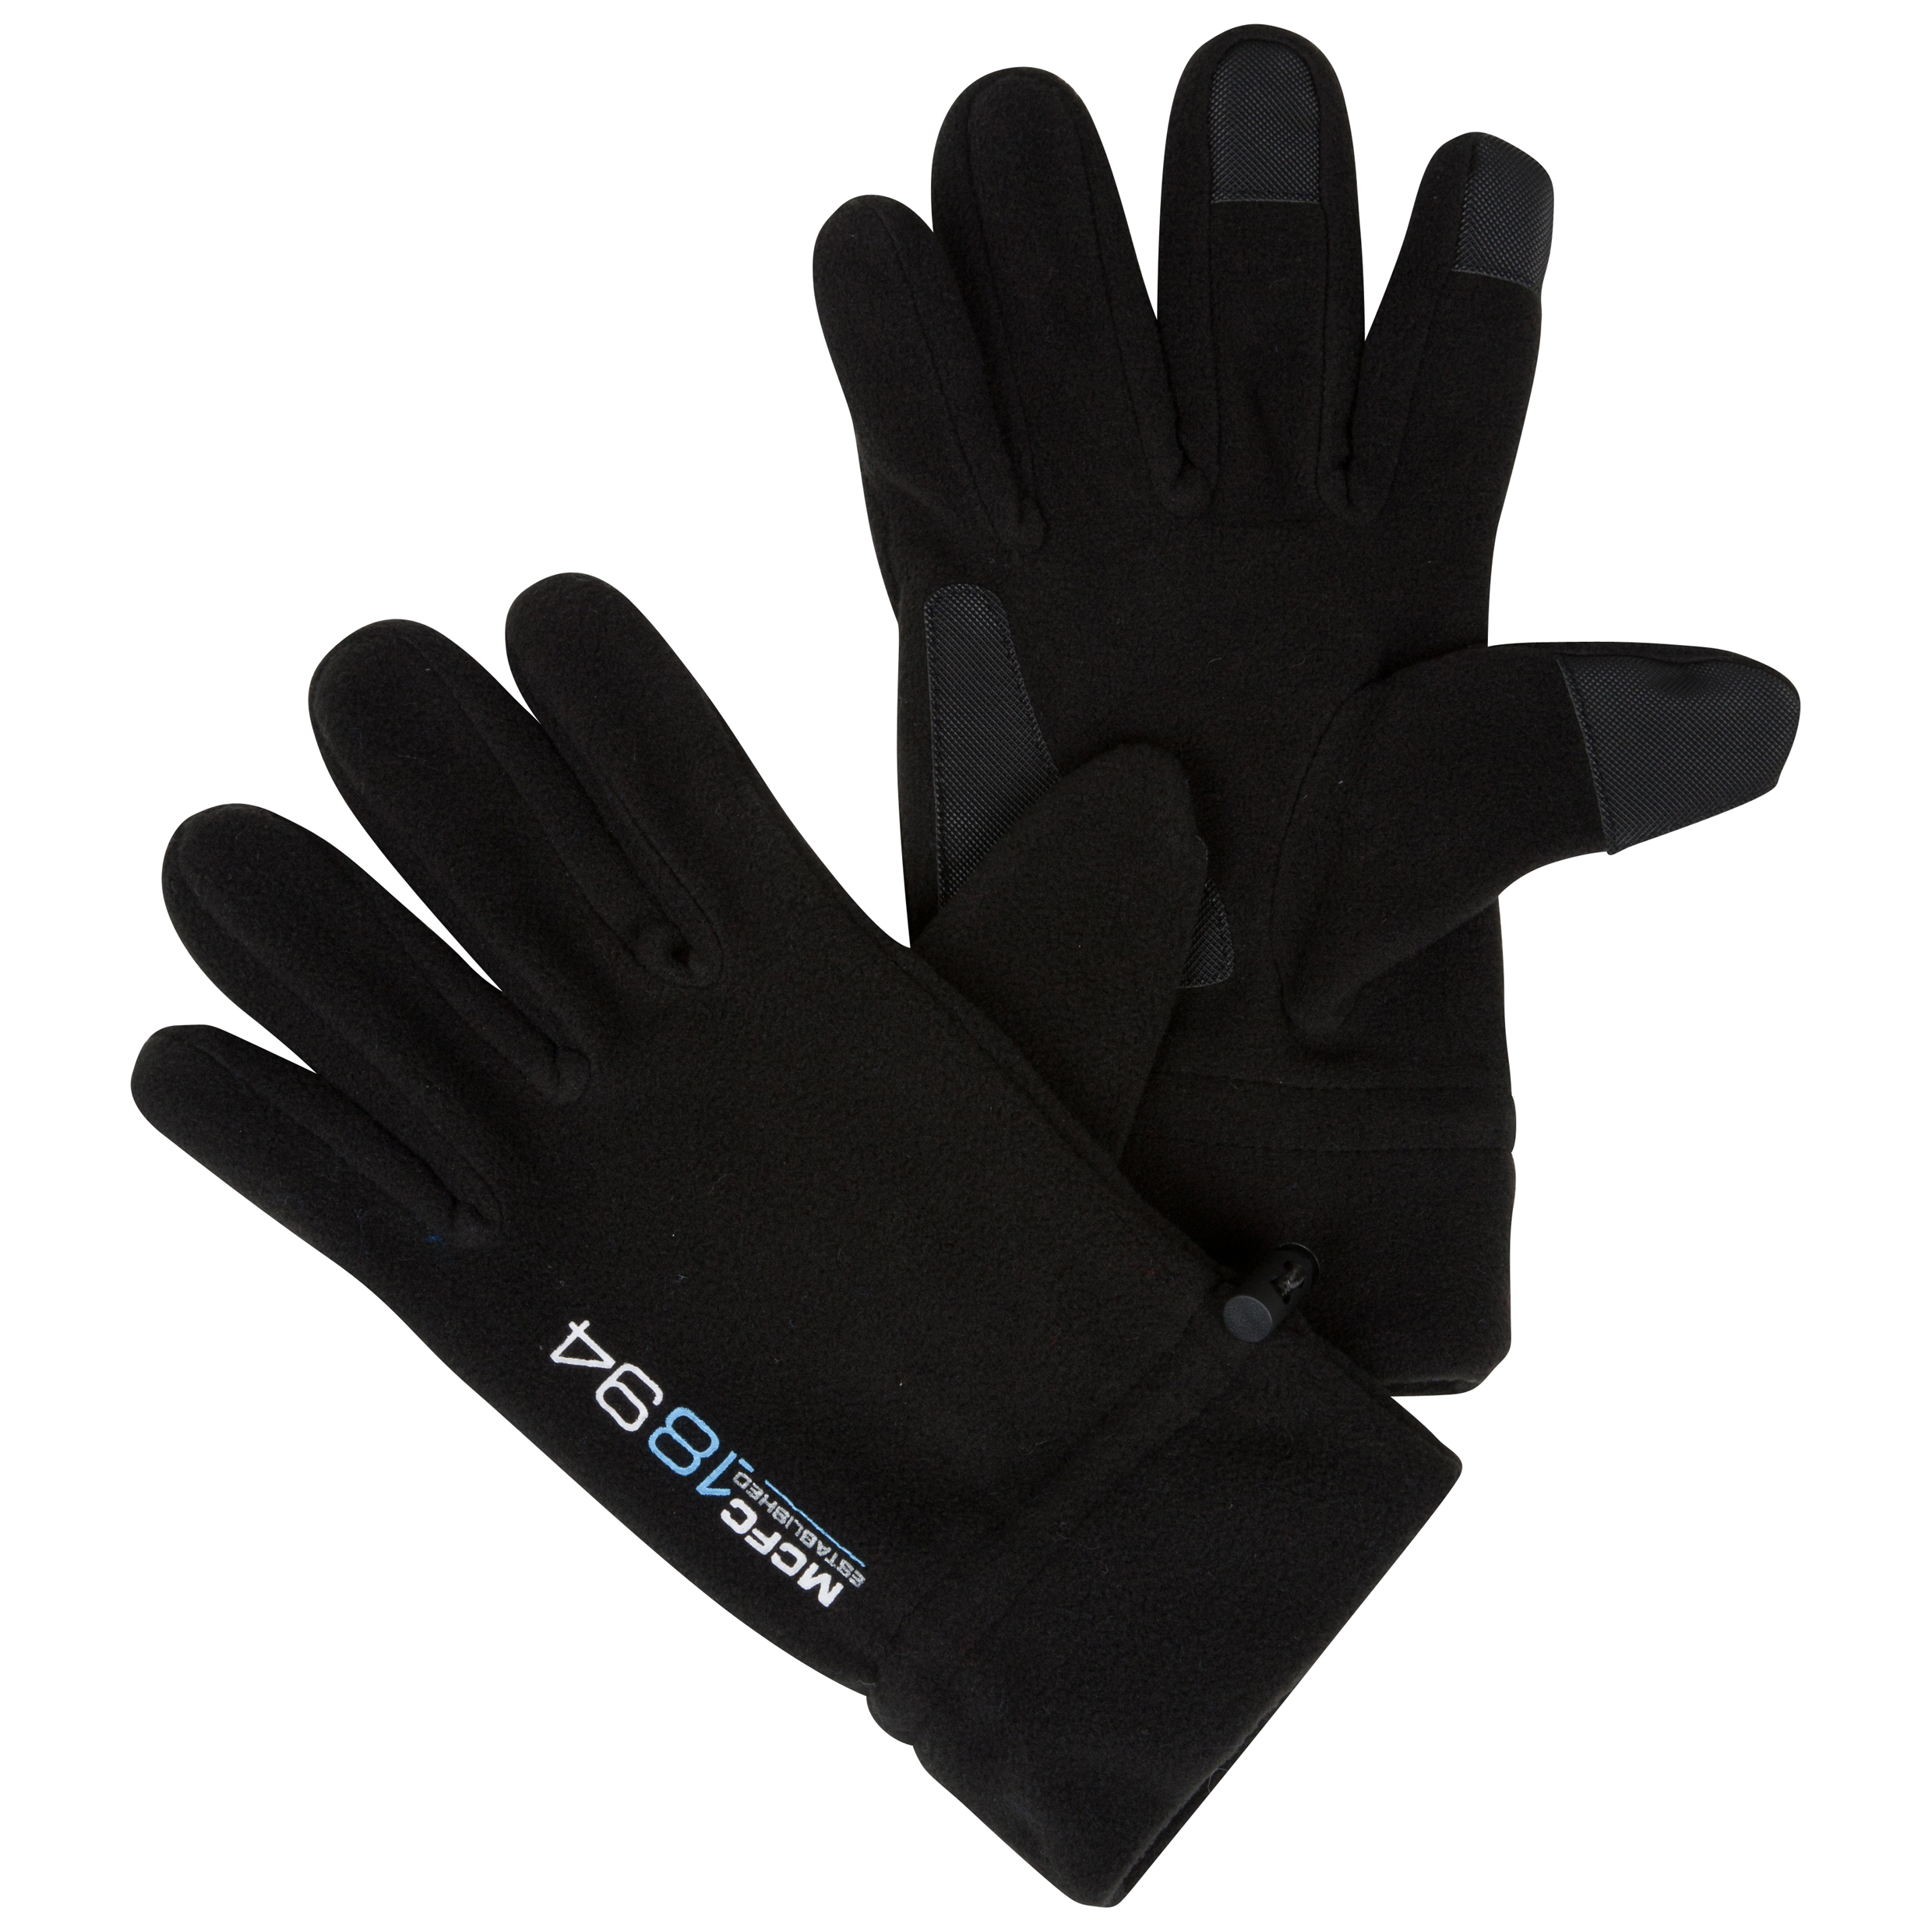 Manchester City Performance Insulator Gloves - Black - Junior